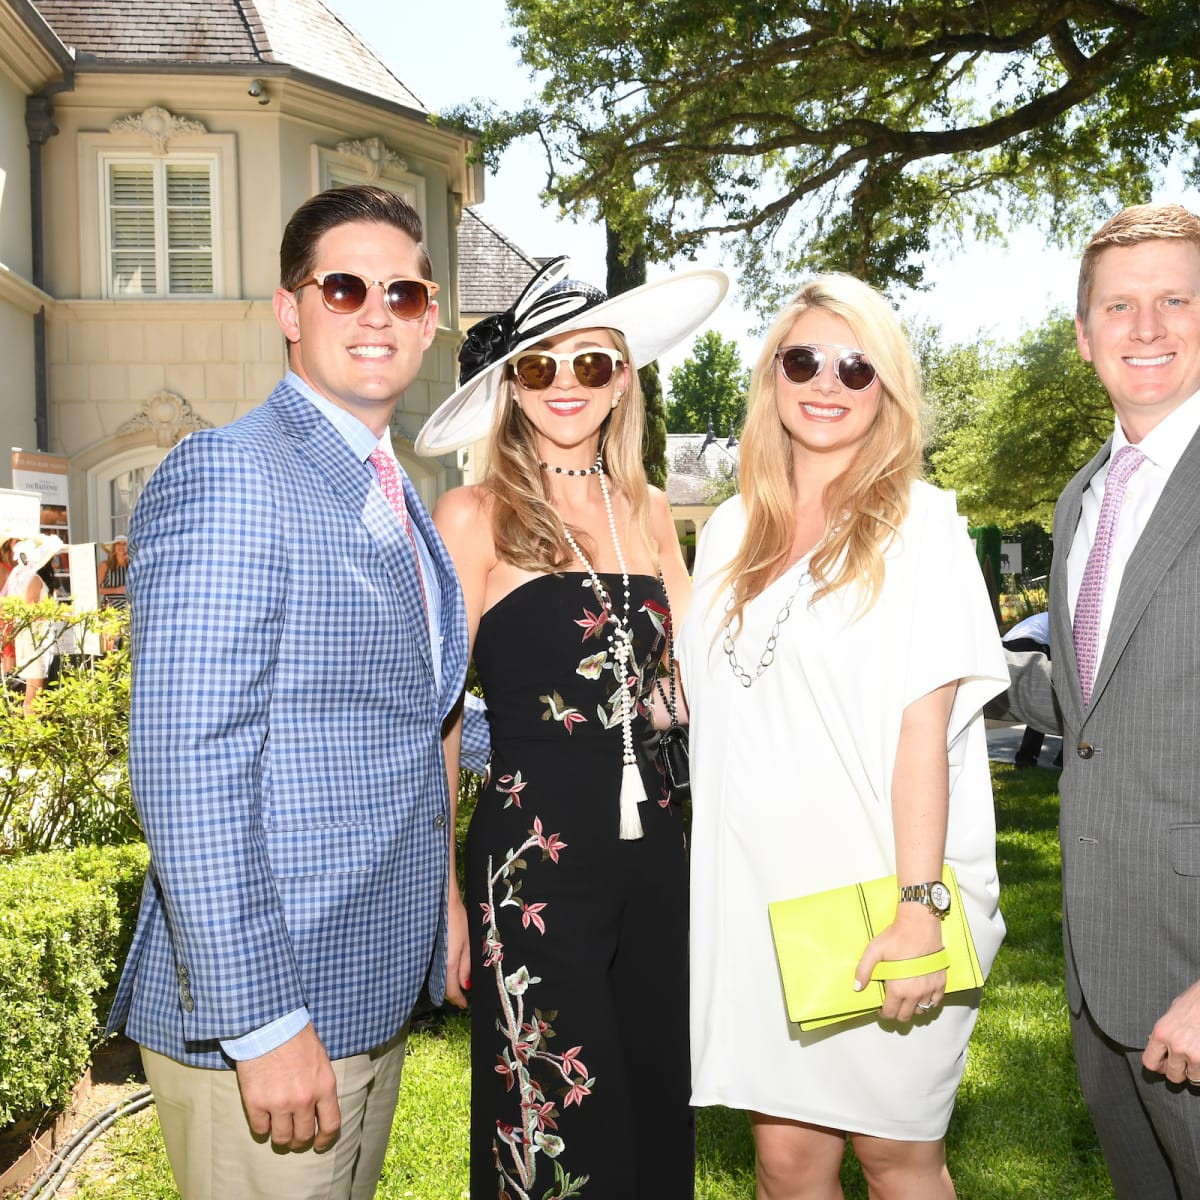 Houston, Hats, Hearts & Horseshoes benefiting Bo's Place 2017, May 2017, Mark Strickland, Ashley Strickland, Christine Falgout Guknecht, Bill Gutknecht